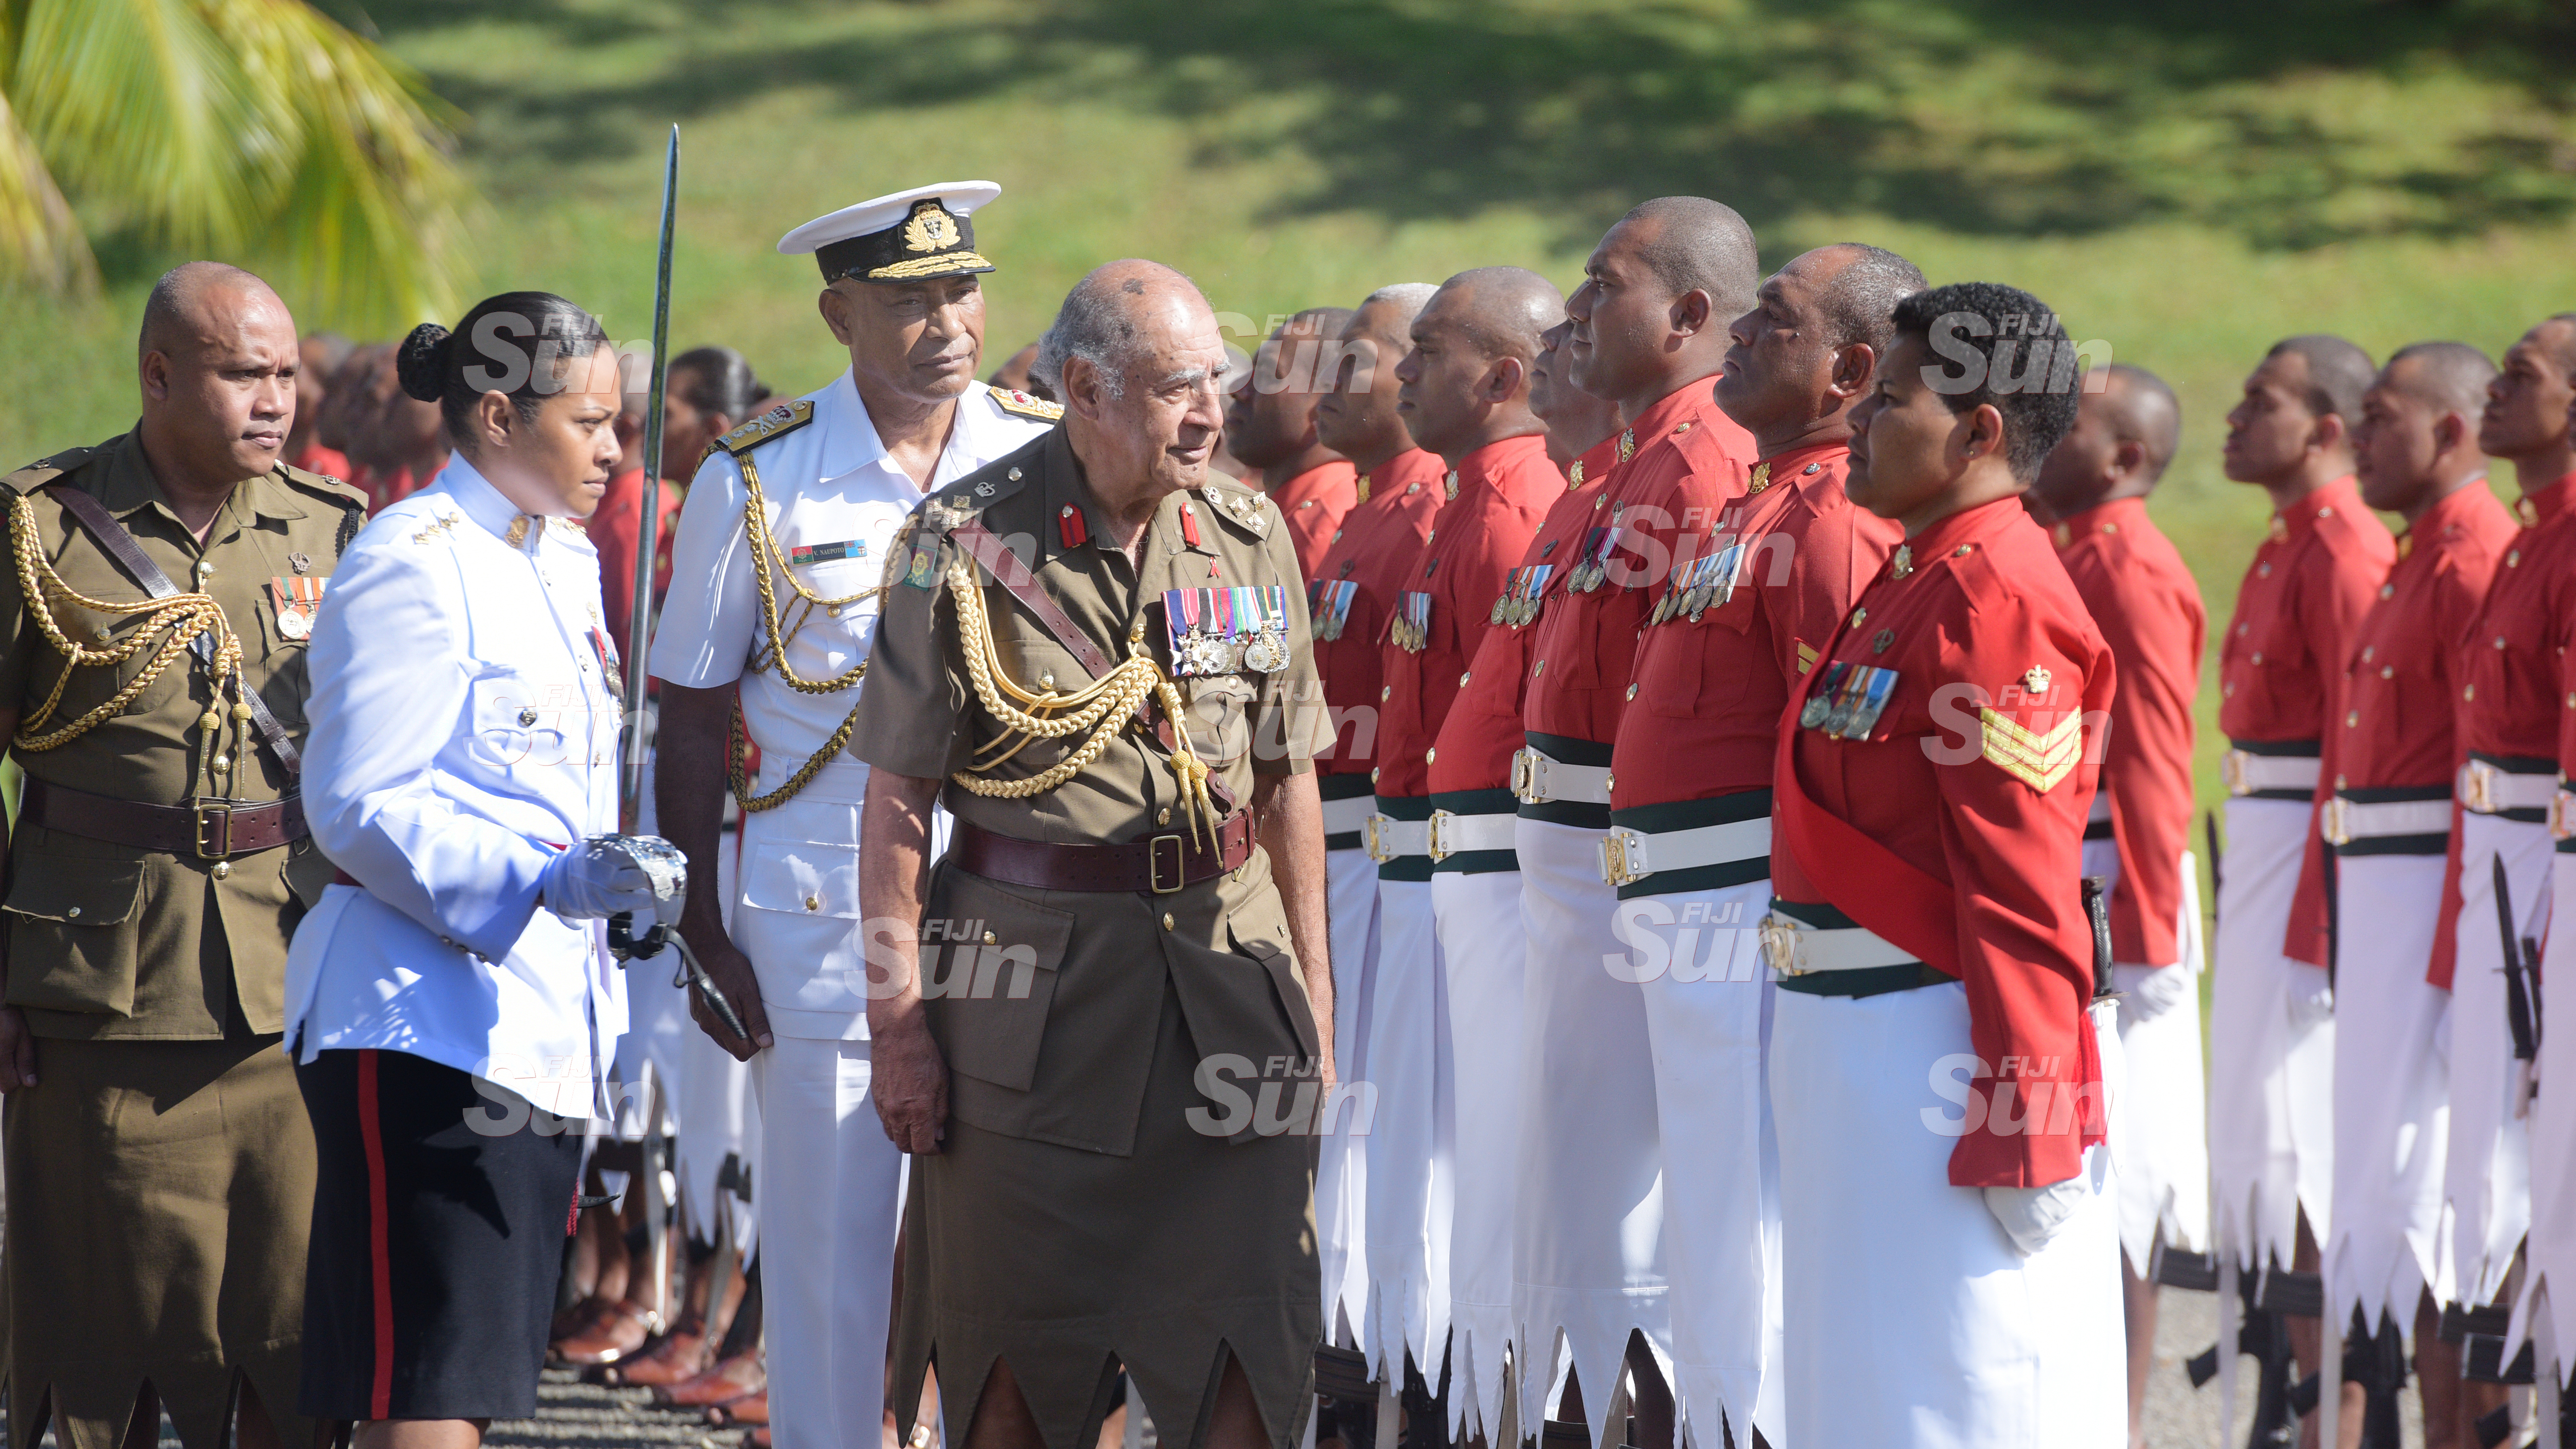 Captain Nina Vadewabuka and RFMF Commander Rear Admiral Viliame Naupoto walk Brigadier General (Retired) Ratu Epeli Nailatikau to inspect the 50 men regimental guard of honour at Queen Elizabeth Barracks during inauguration of the Colonel of the Regiment on July 21, 2020. Photo: Ronald Kumar.